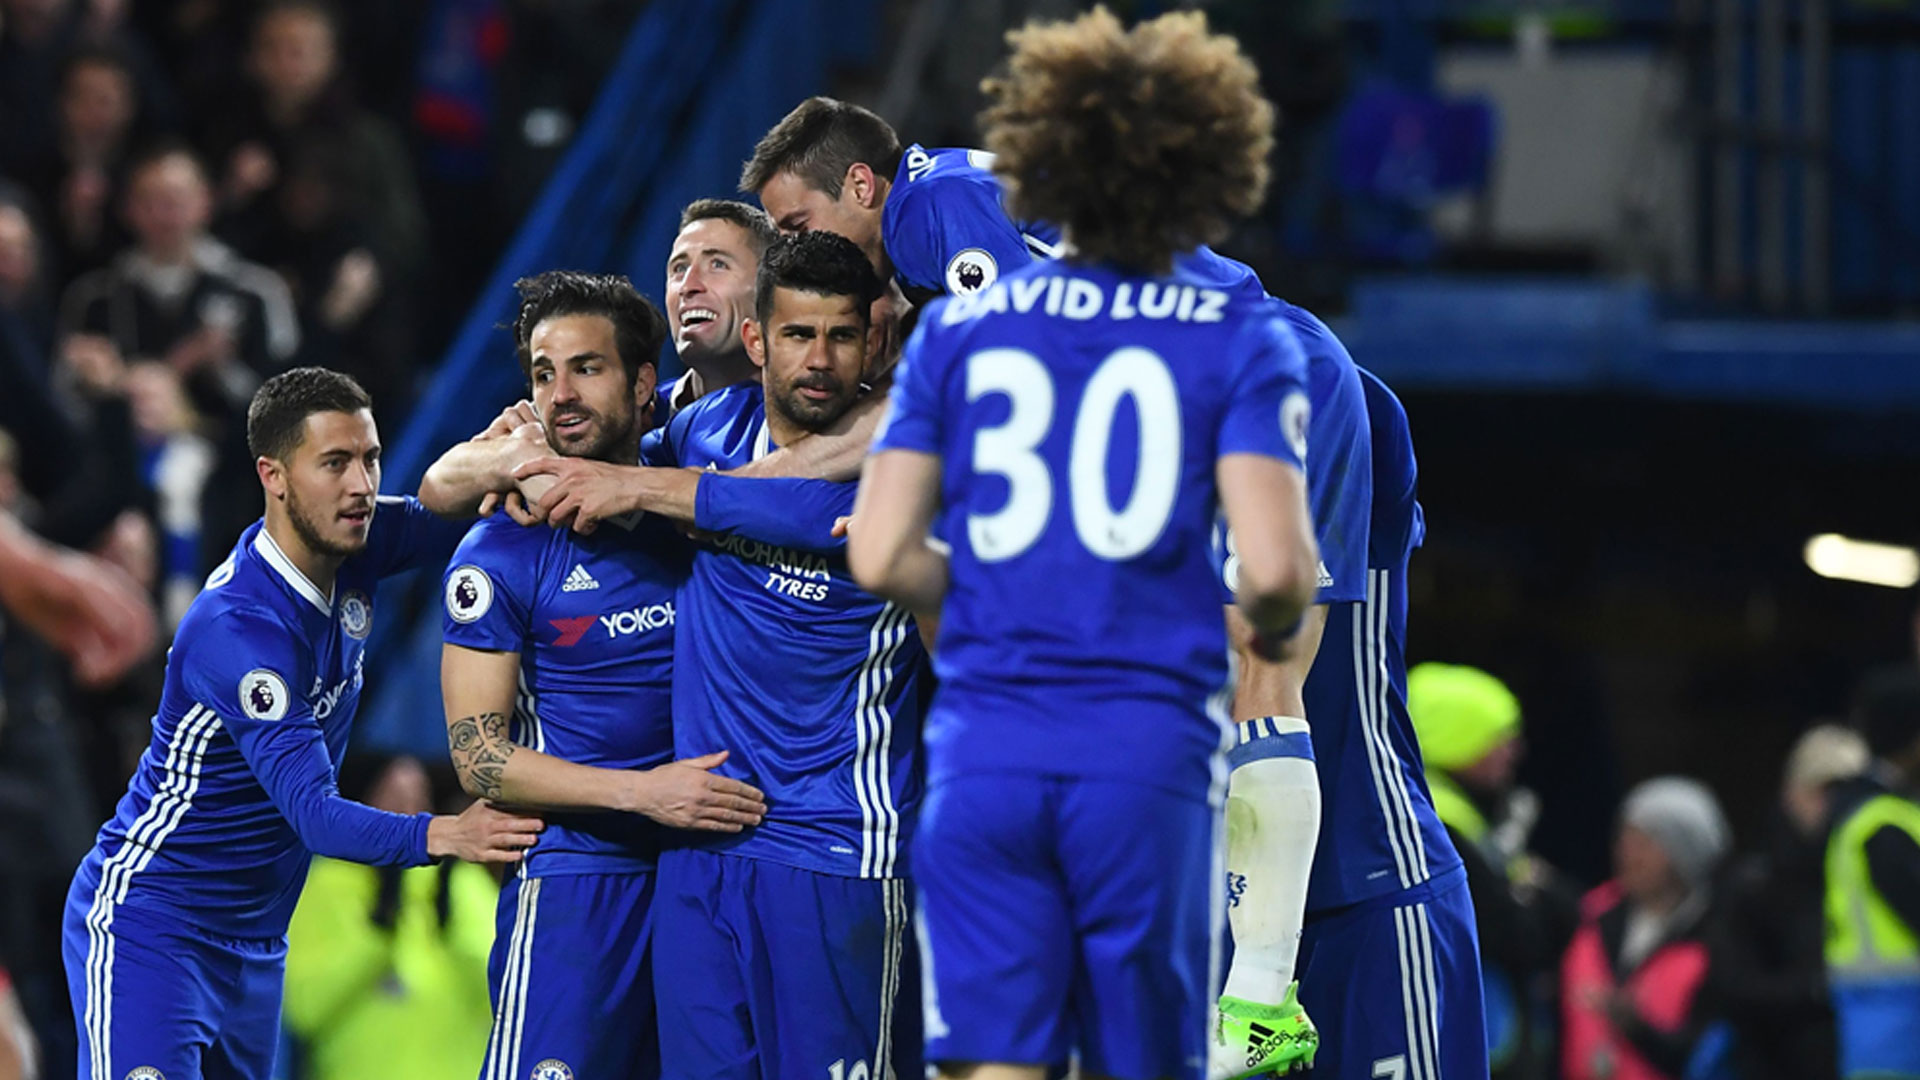 Chelsea extend Premier League lead with 4-2 win over Southampton